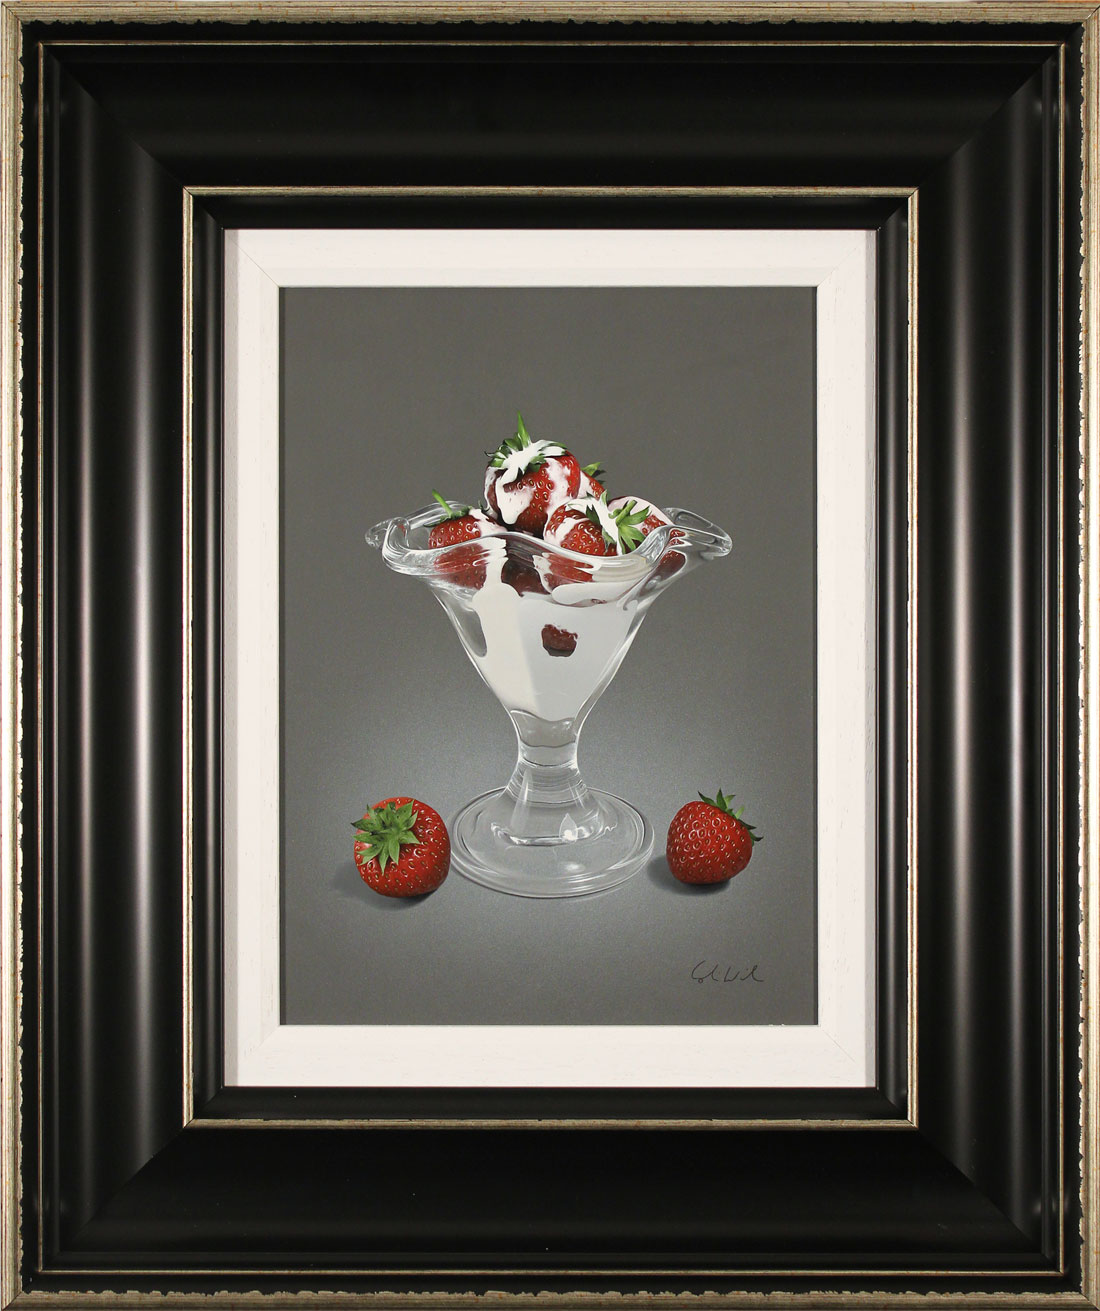 Colin Wilson, Original acrylic painting on board, Strawberries and Cream, click to enlarge